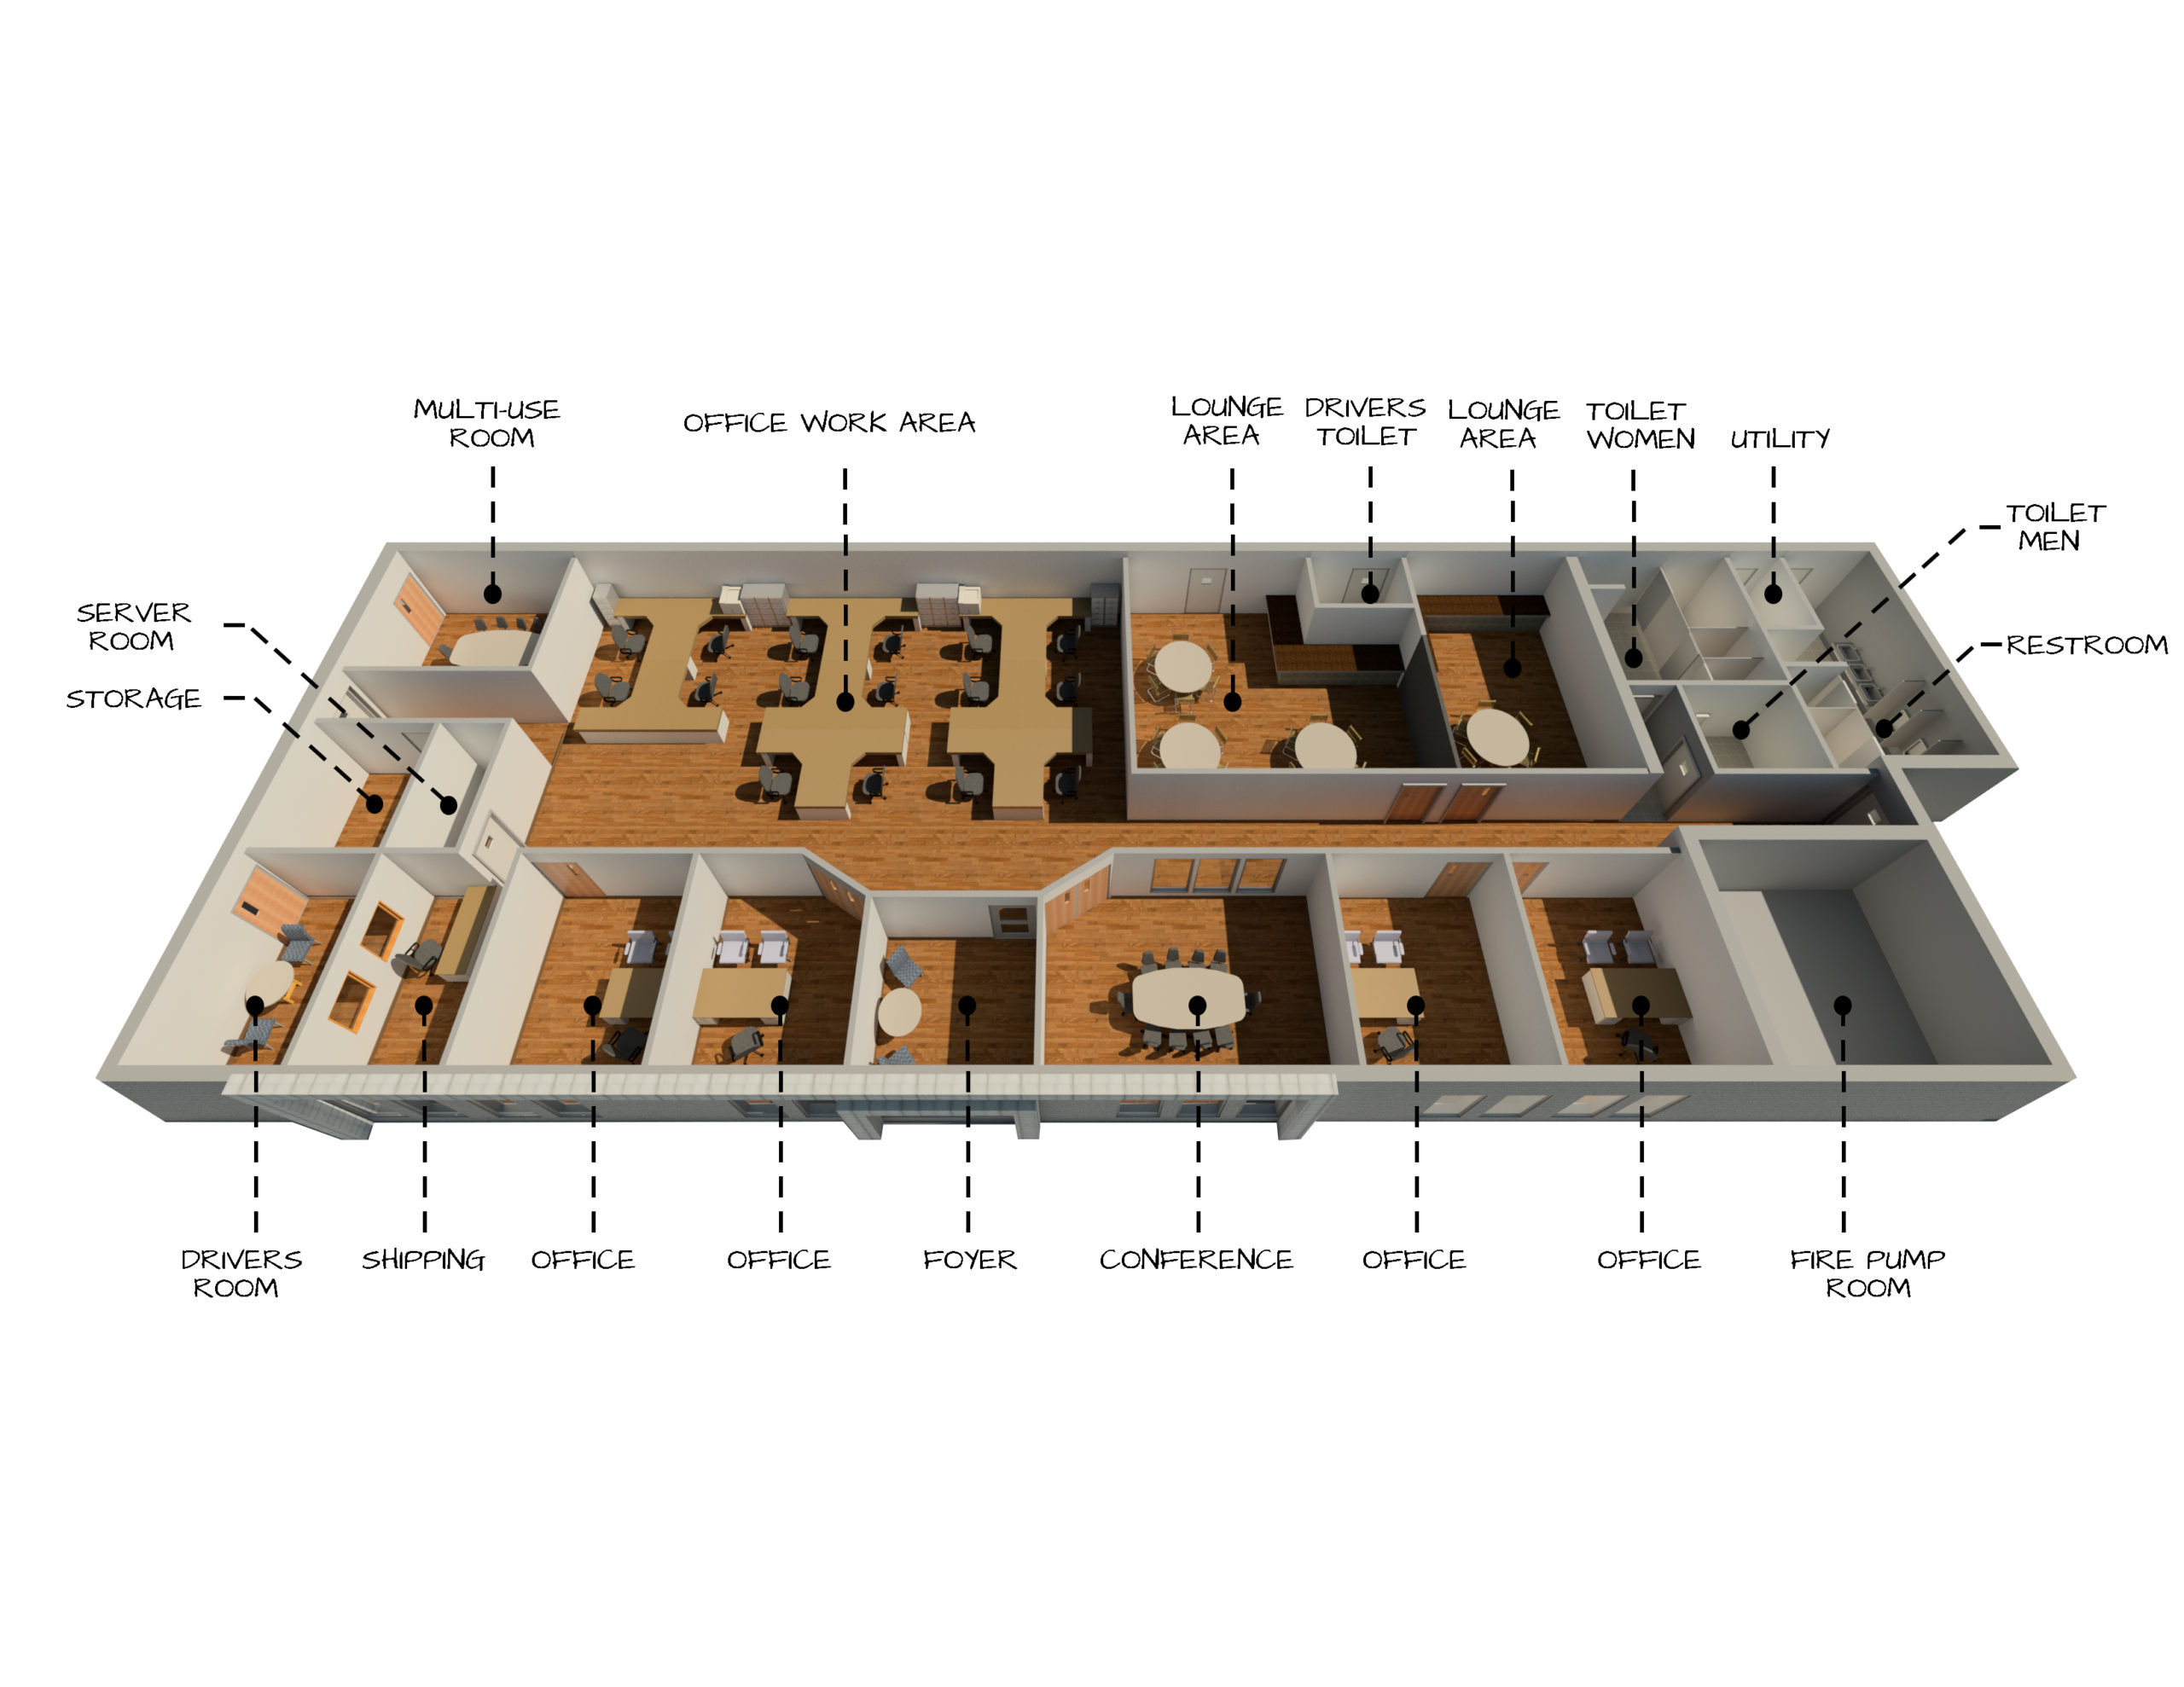 3D Rendering for Second Building at North American Warehousing Company